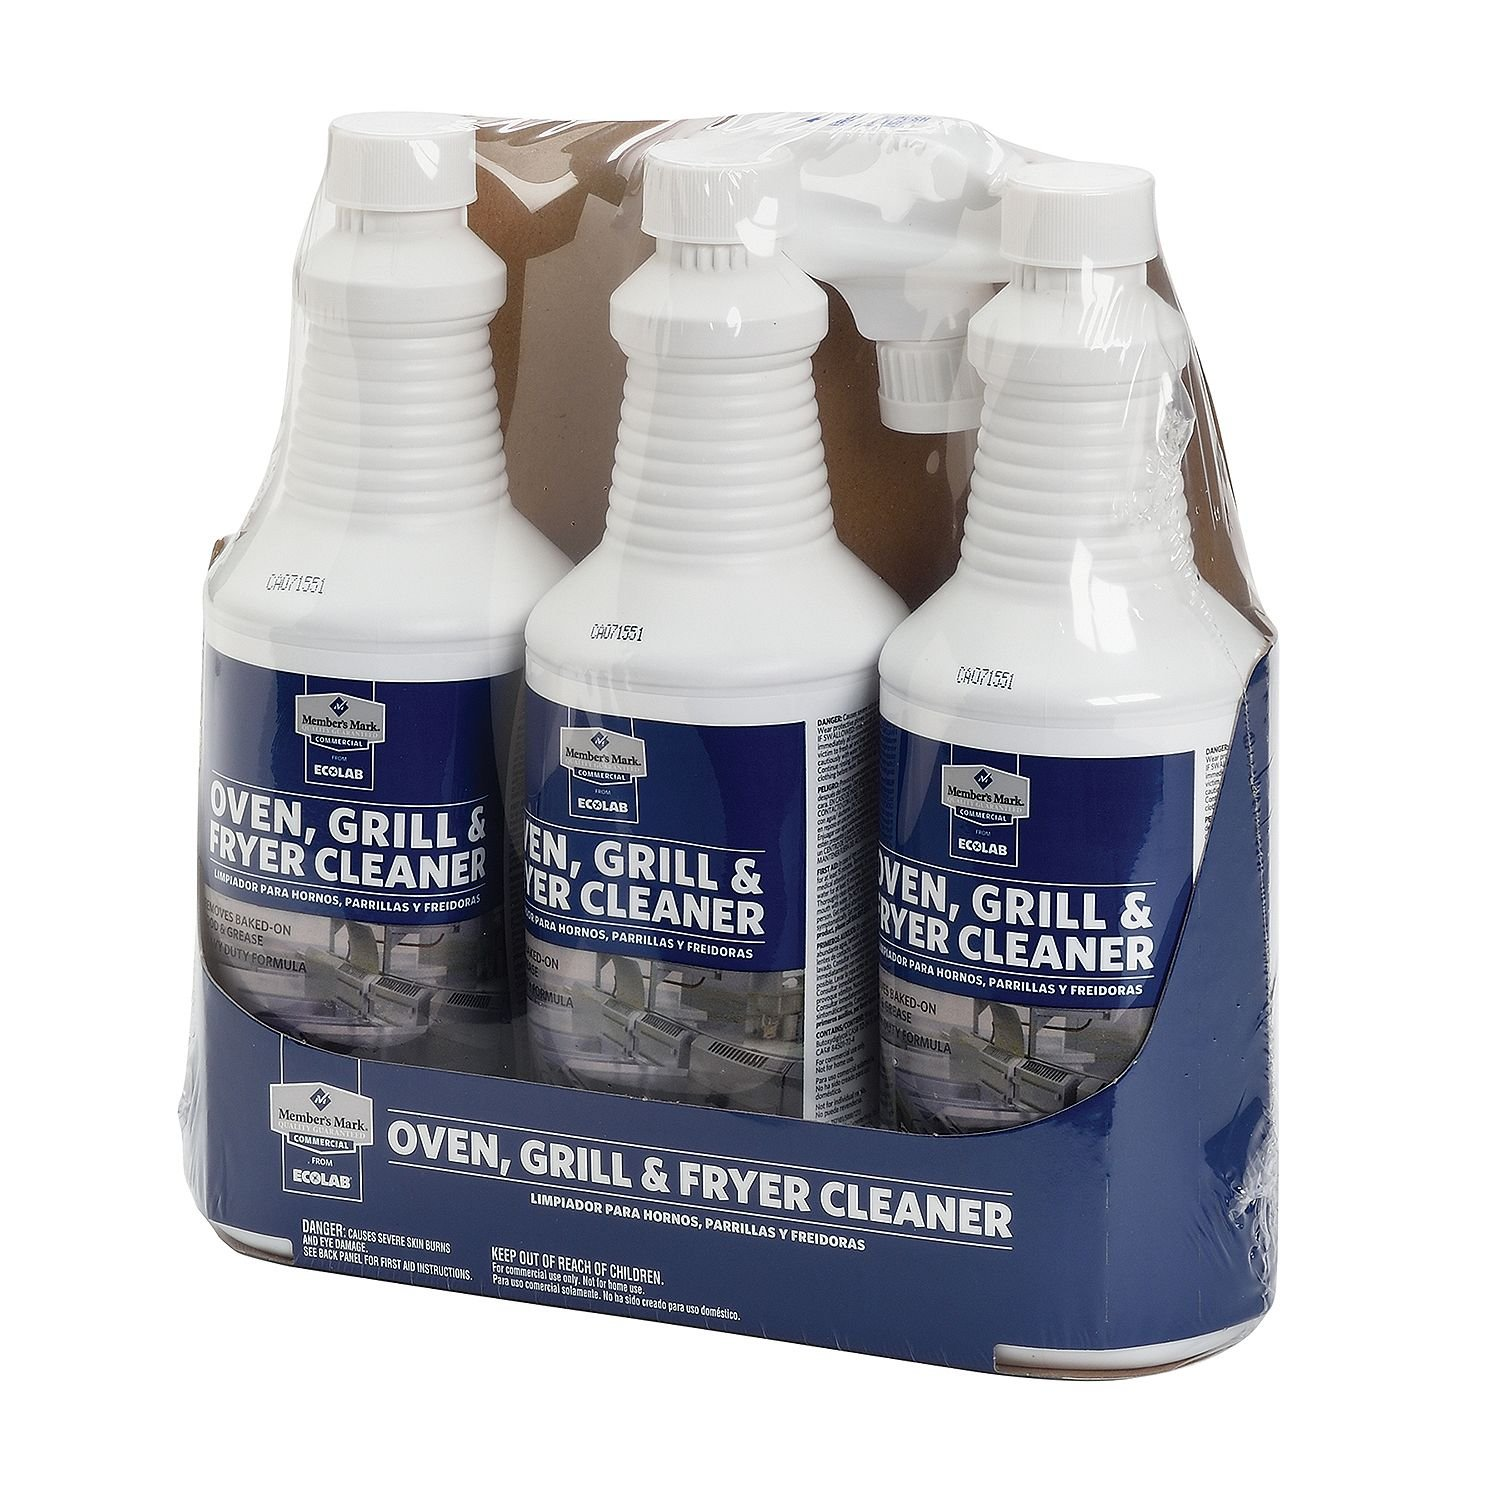 Product of Member's Mark Commerical Oven, Grill and Fryer Cleaner by Ecolab (32 oz, 3 pk.) - All-Purpose Cleaners [Bulk Savings]